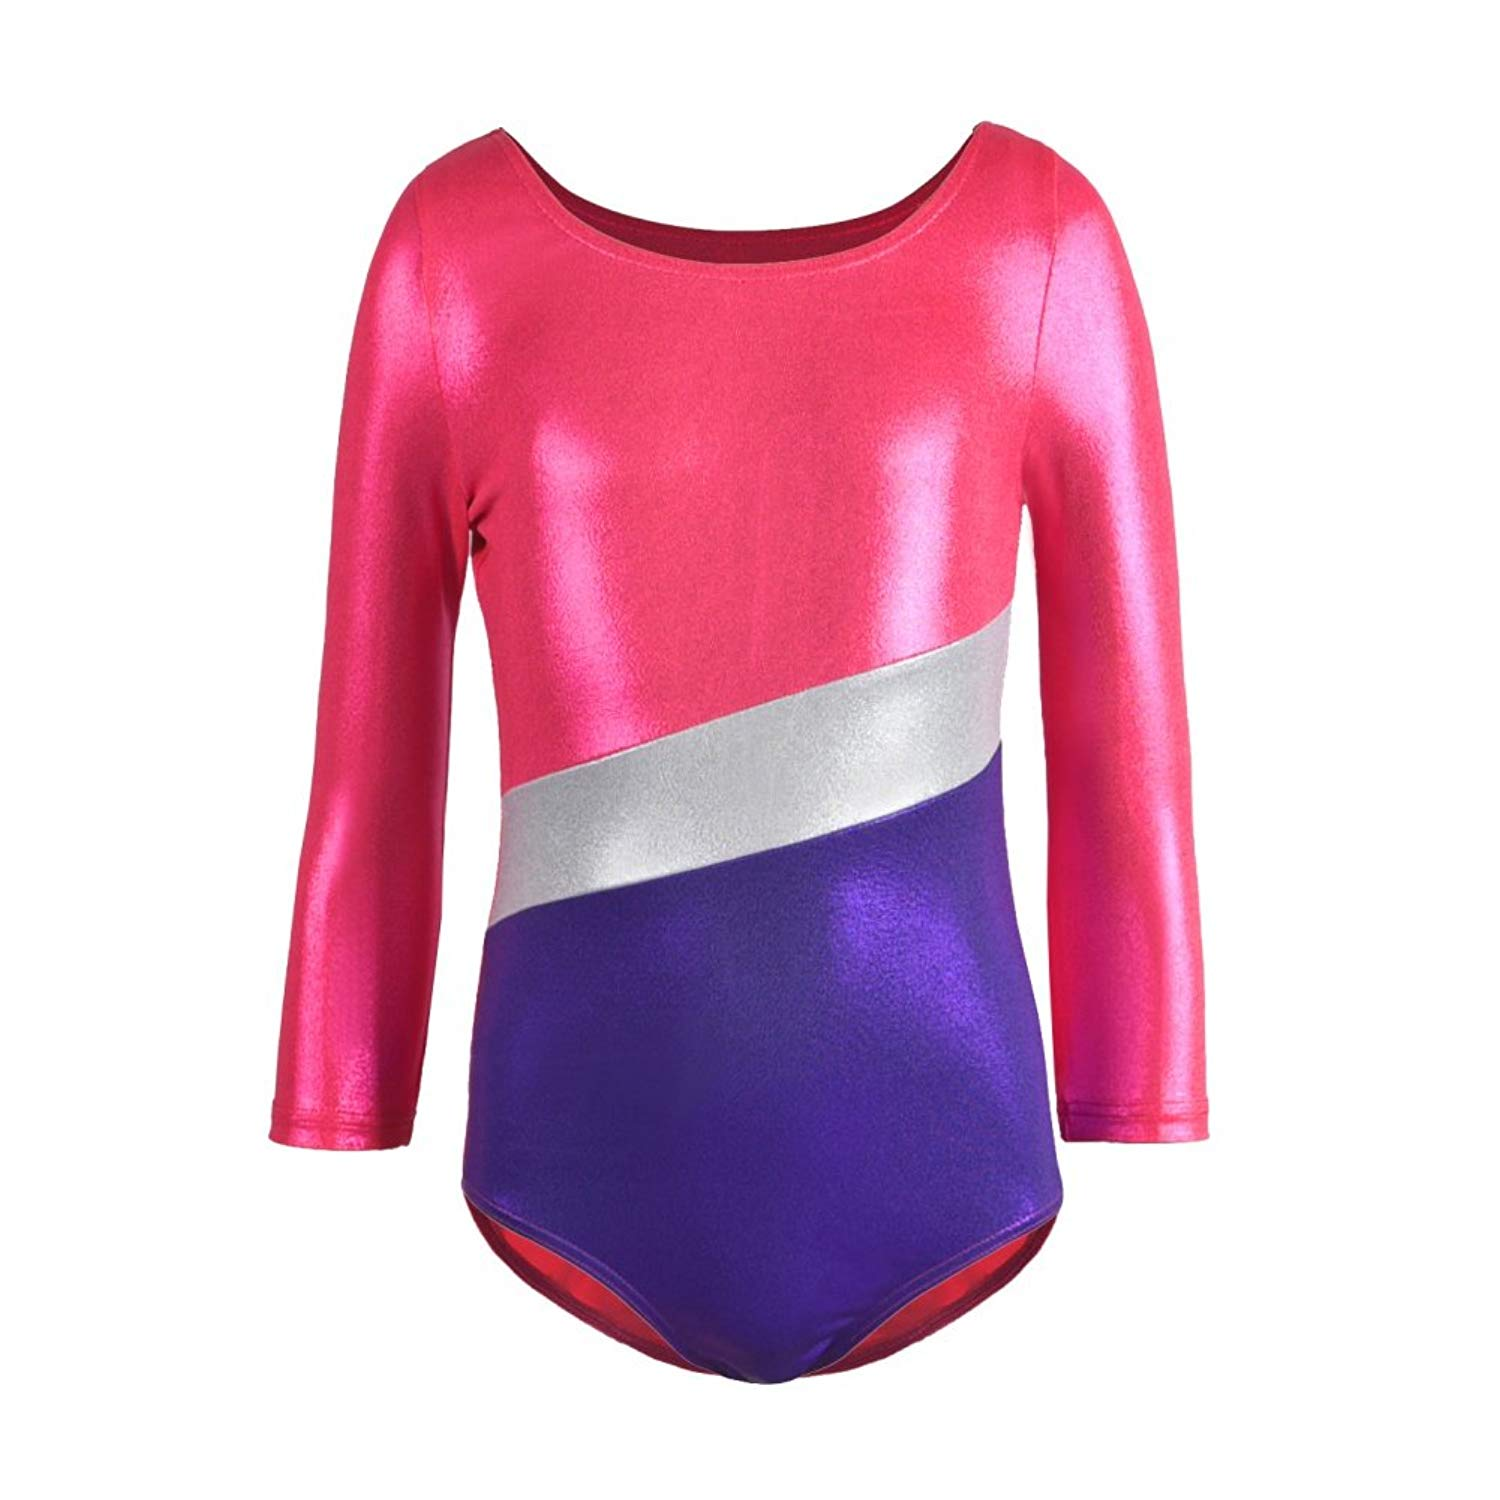 01ed53d65 Cheap Pink Leotard For Girls